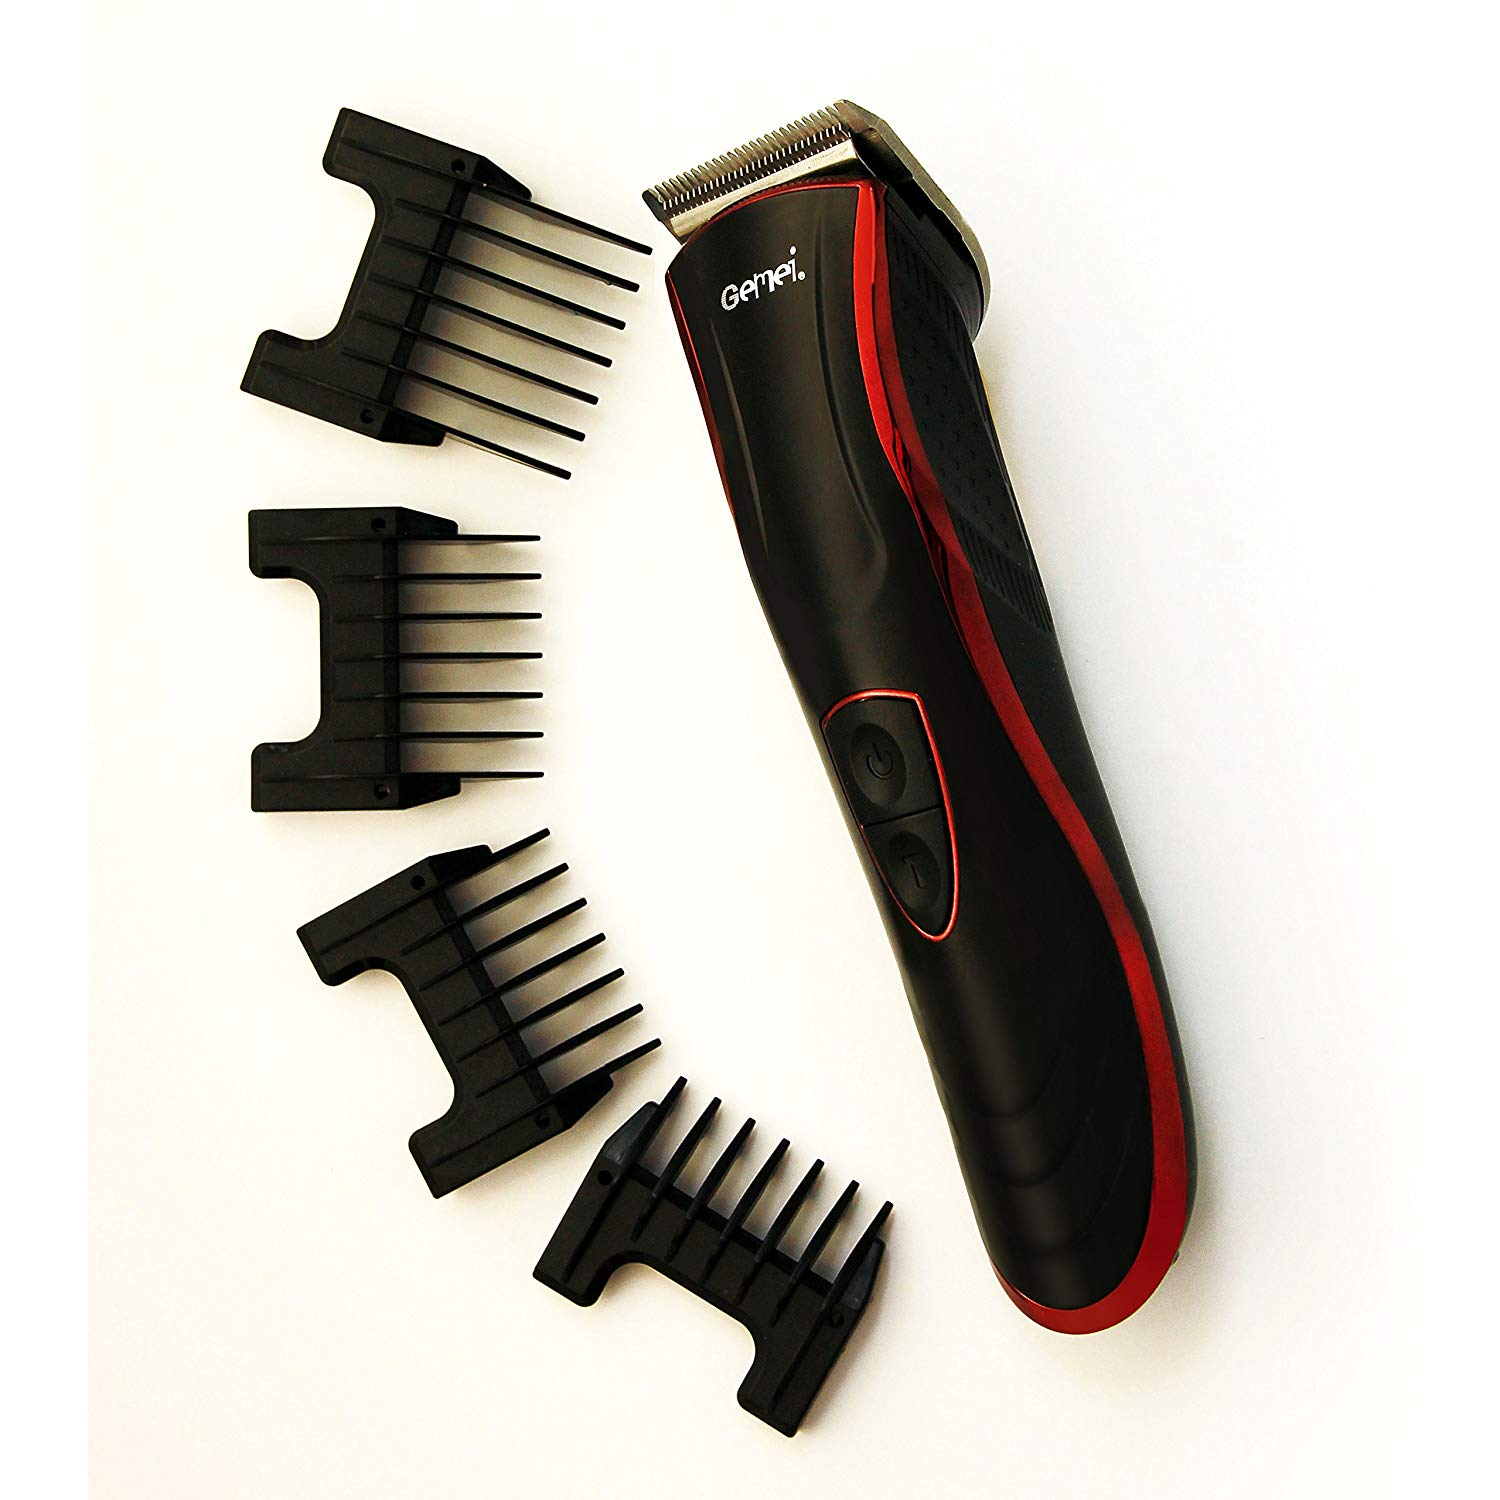 Cheap Good Hair Cutting Clippers Find Good Hair Cutting Clippers